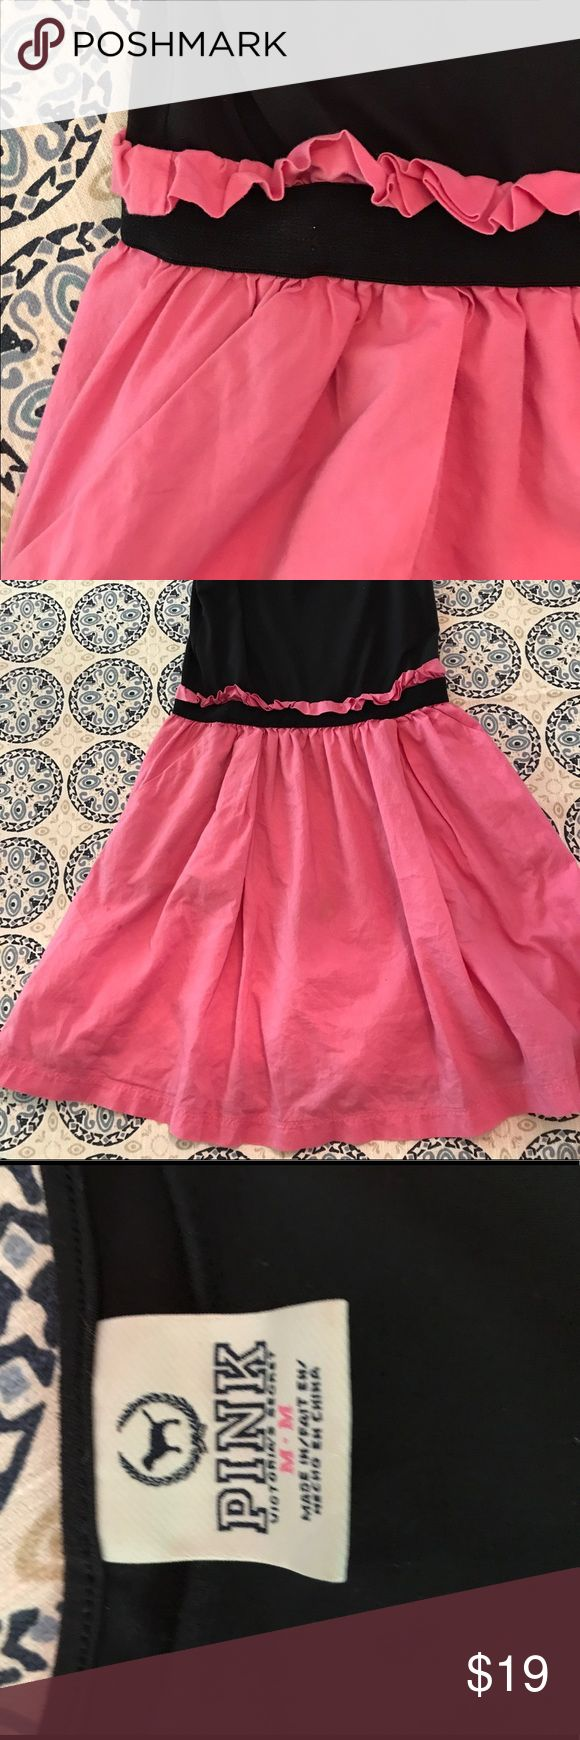 Victoria's Secret PINK, sundress Perfect summer sundress! This adorable sundress will look great and feels great! This dress also has pockets as well! PINK Victoria's Secret Dresses